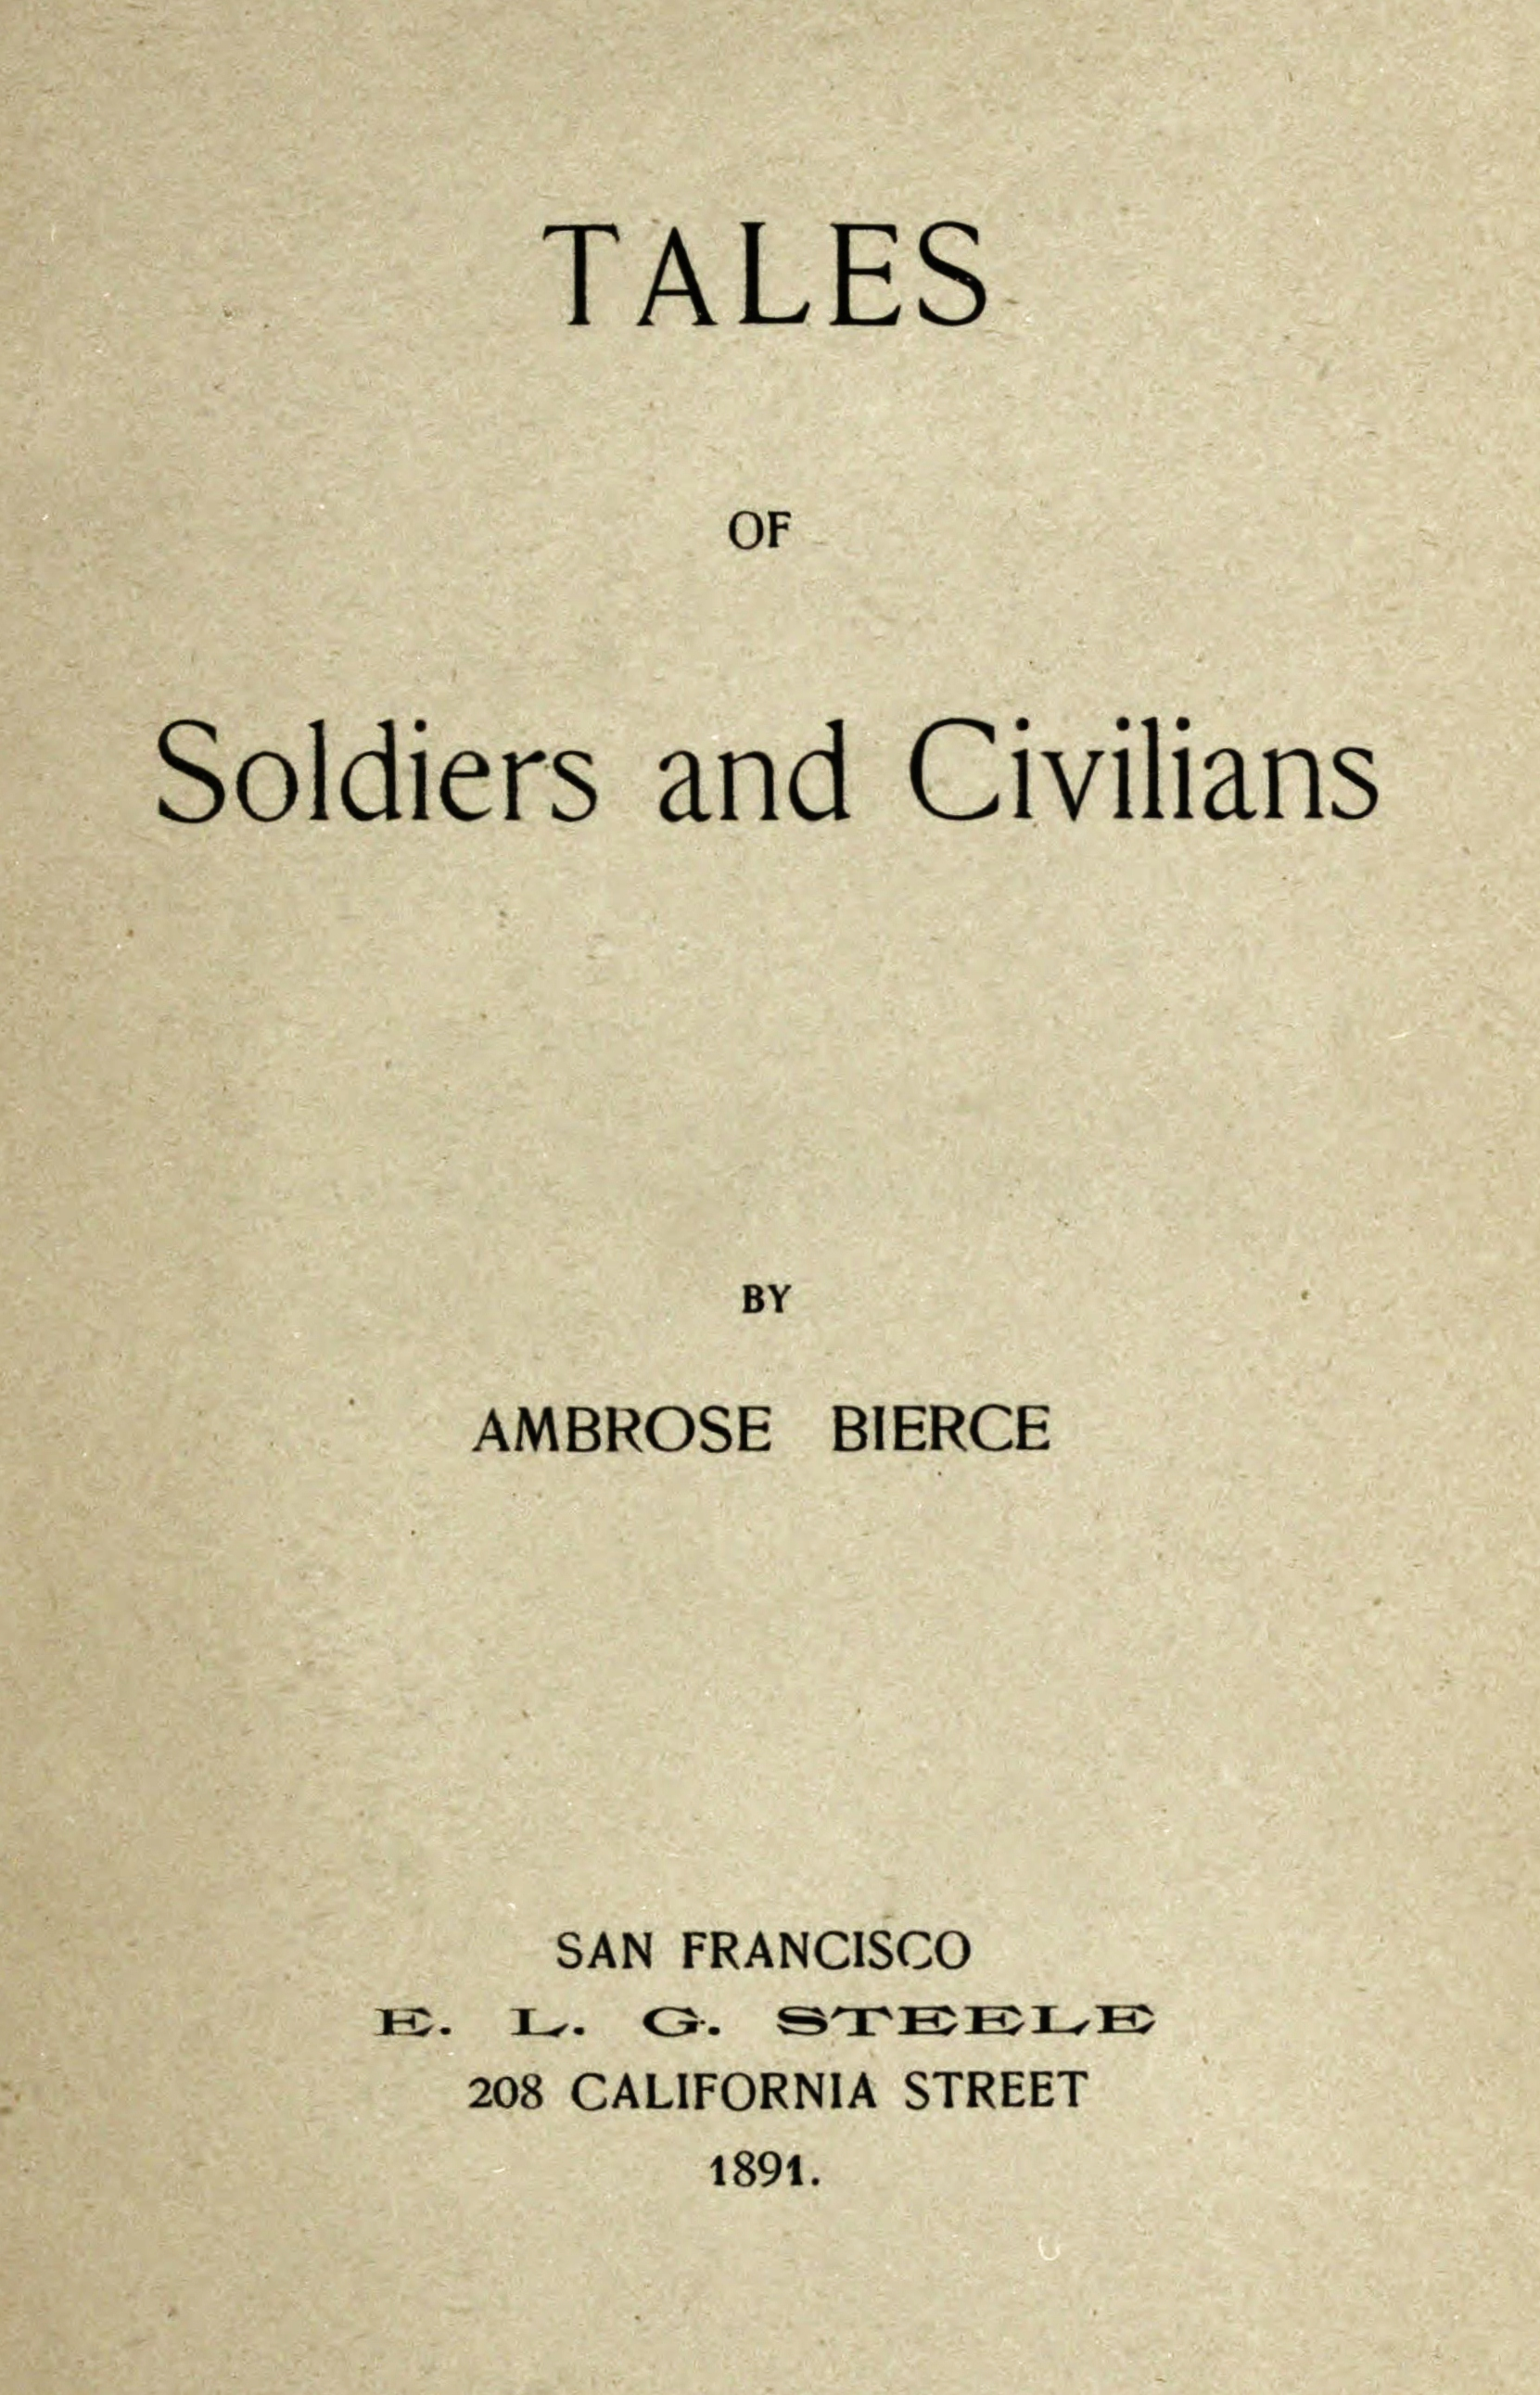 Title page of Tales of Soldiers and Civilians. Courtesy of Internet Archive.